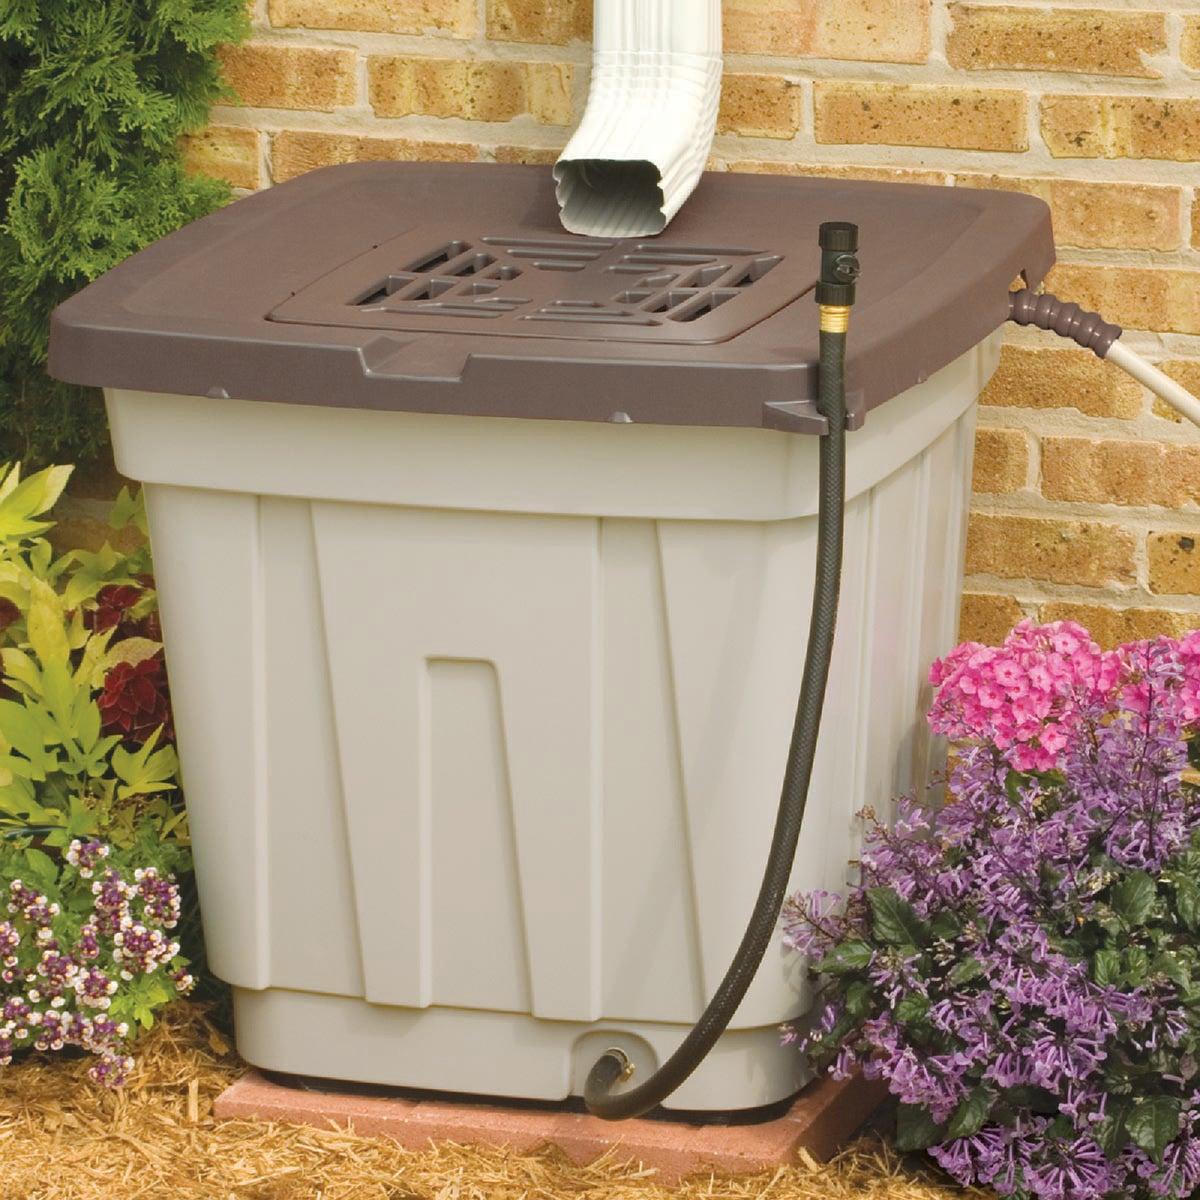 50 GAL RAIN BARREL - RB5010PK by Suncast Corporation